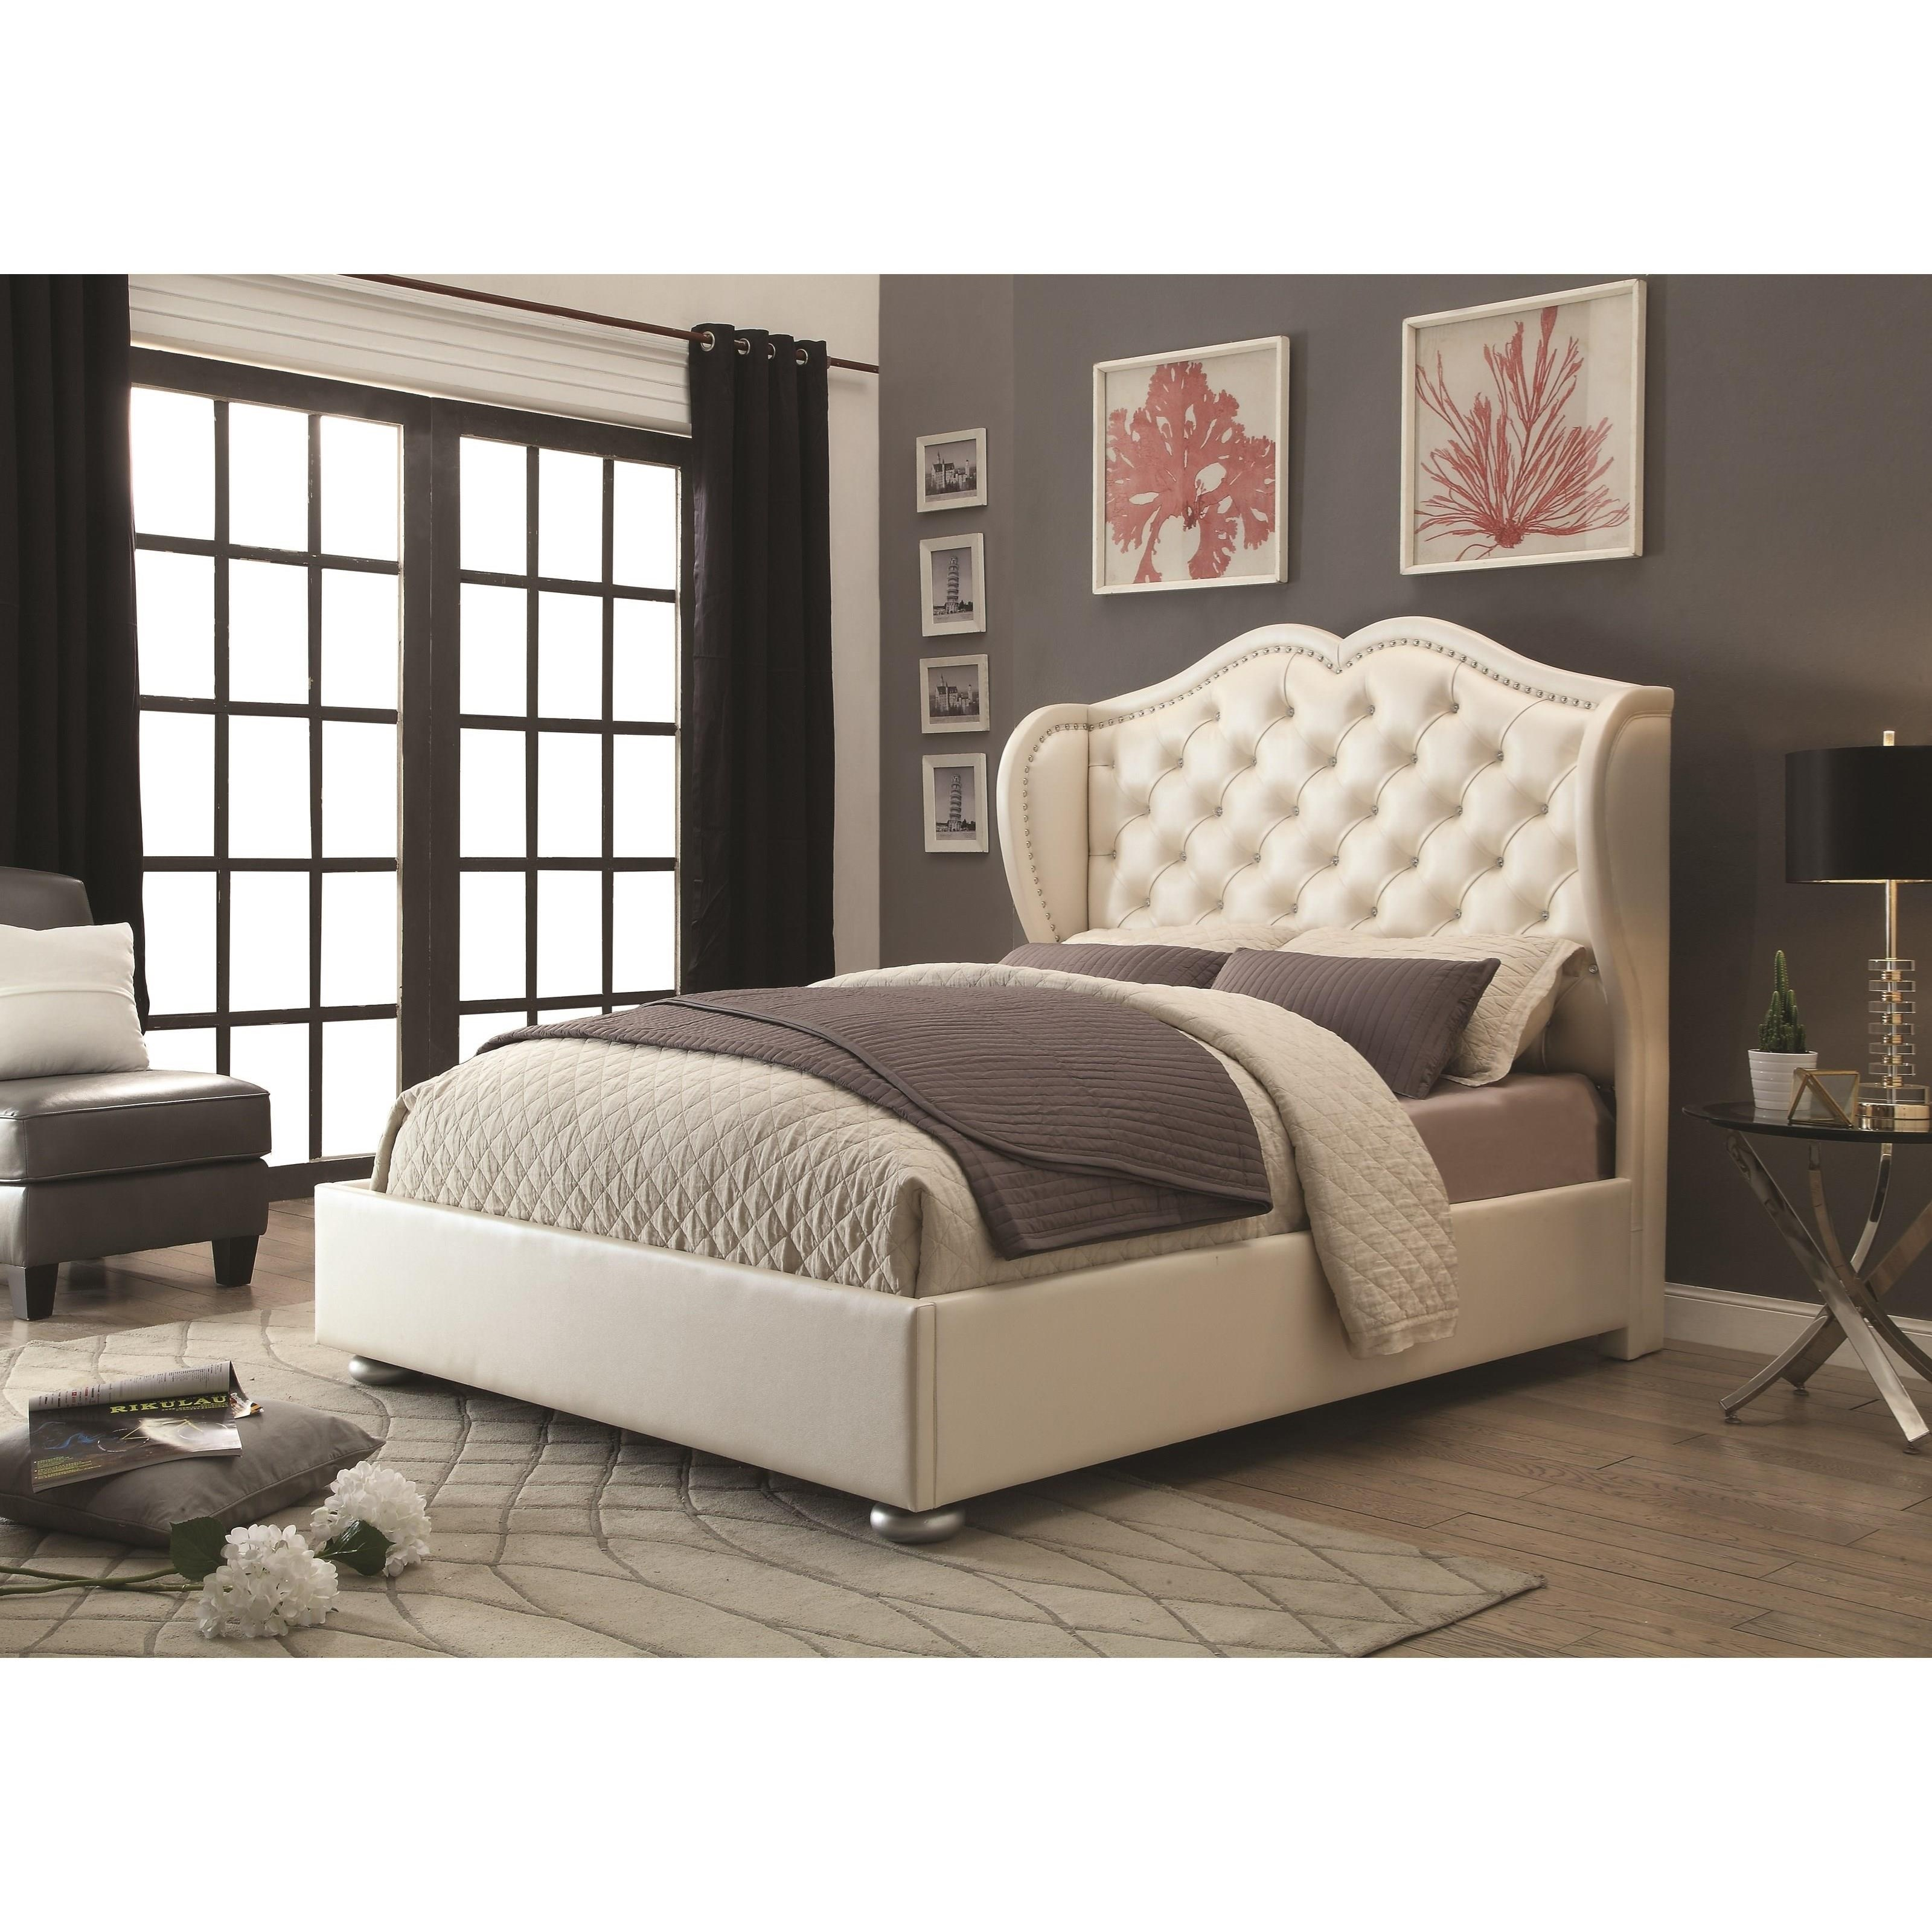 coaster upholstered beds queen bed item number 302011q - Coaster Bed Frame